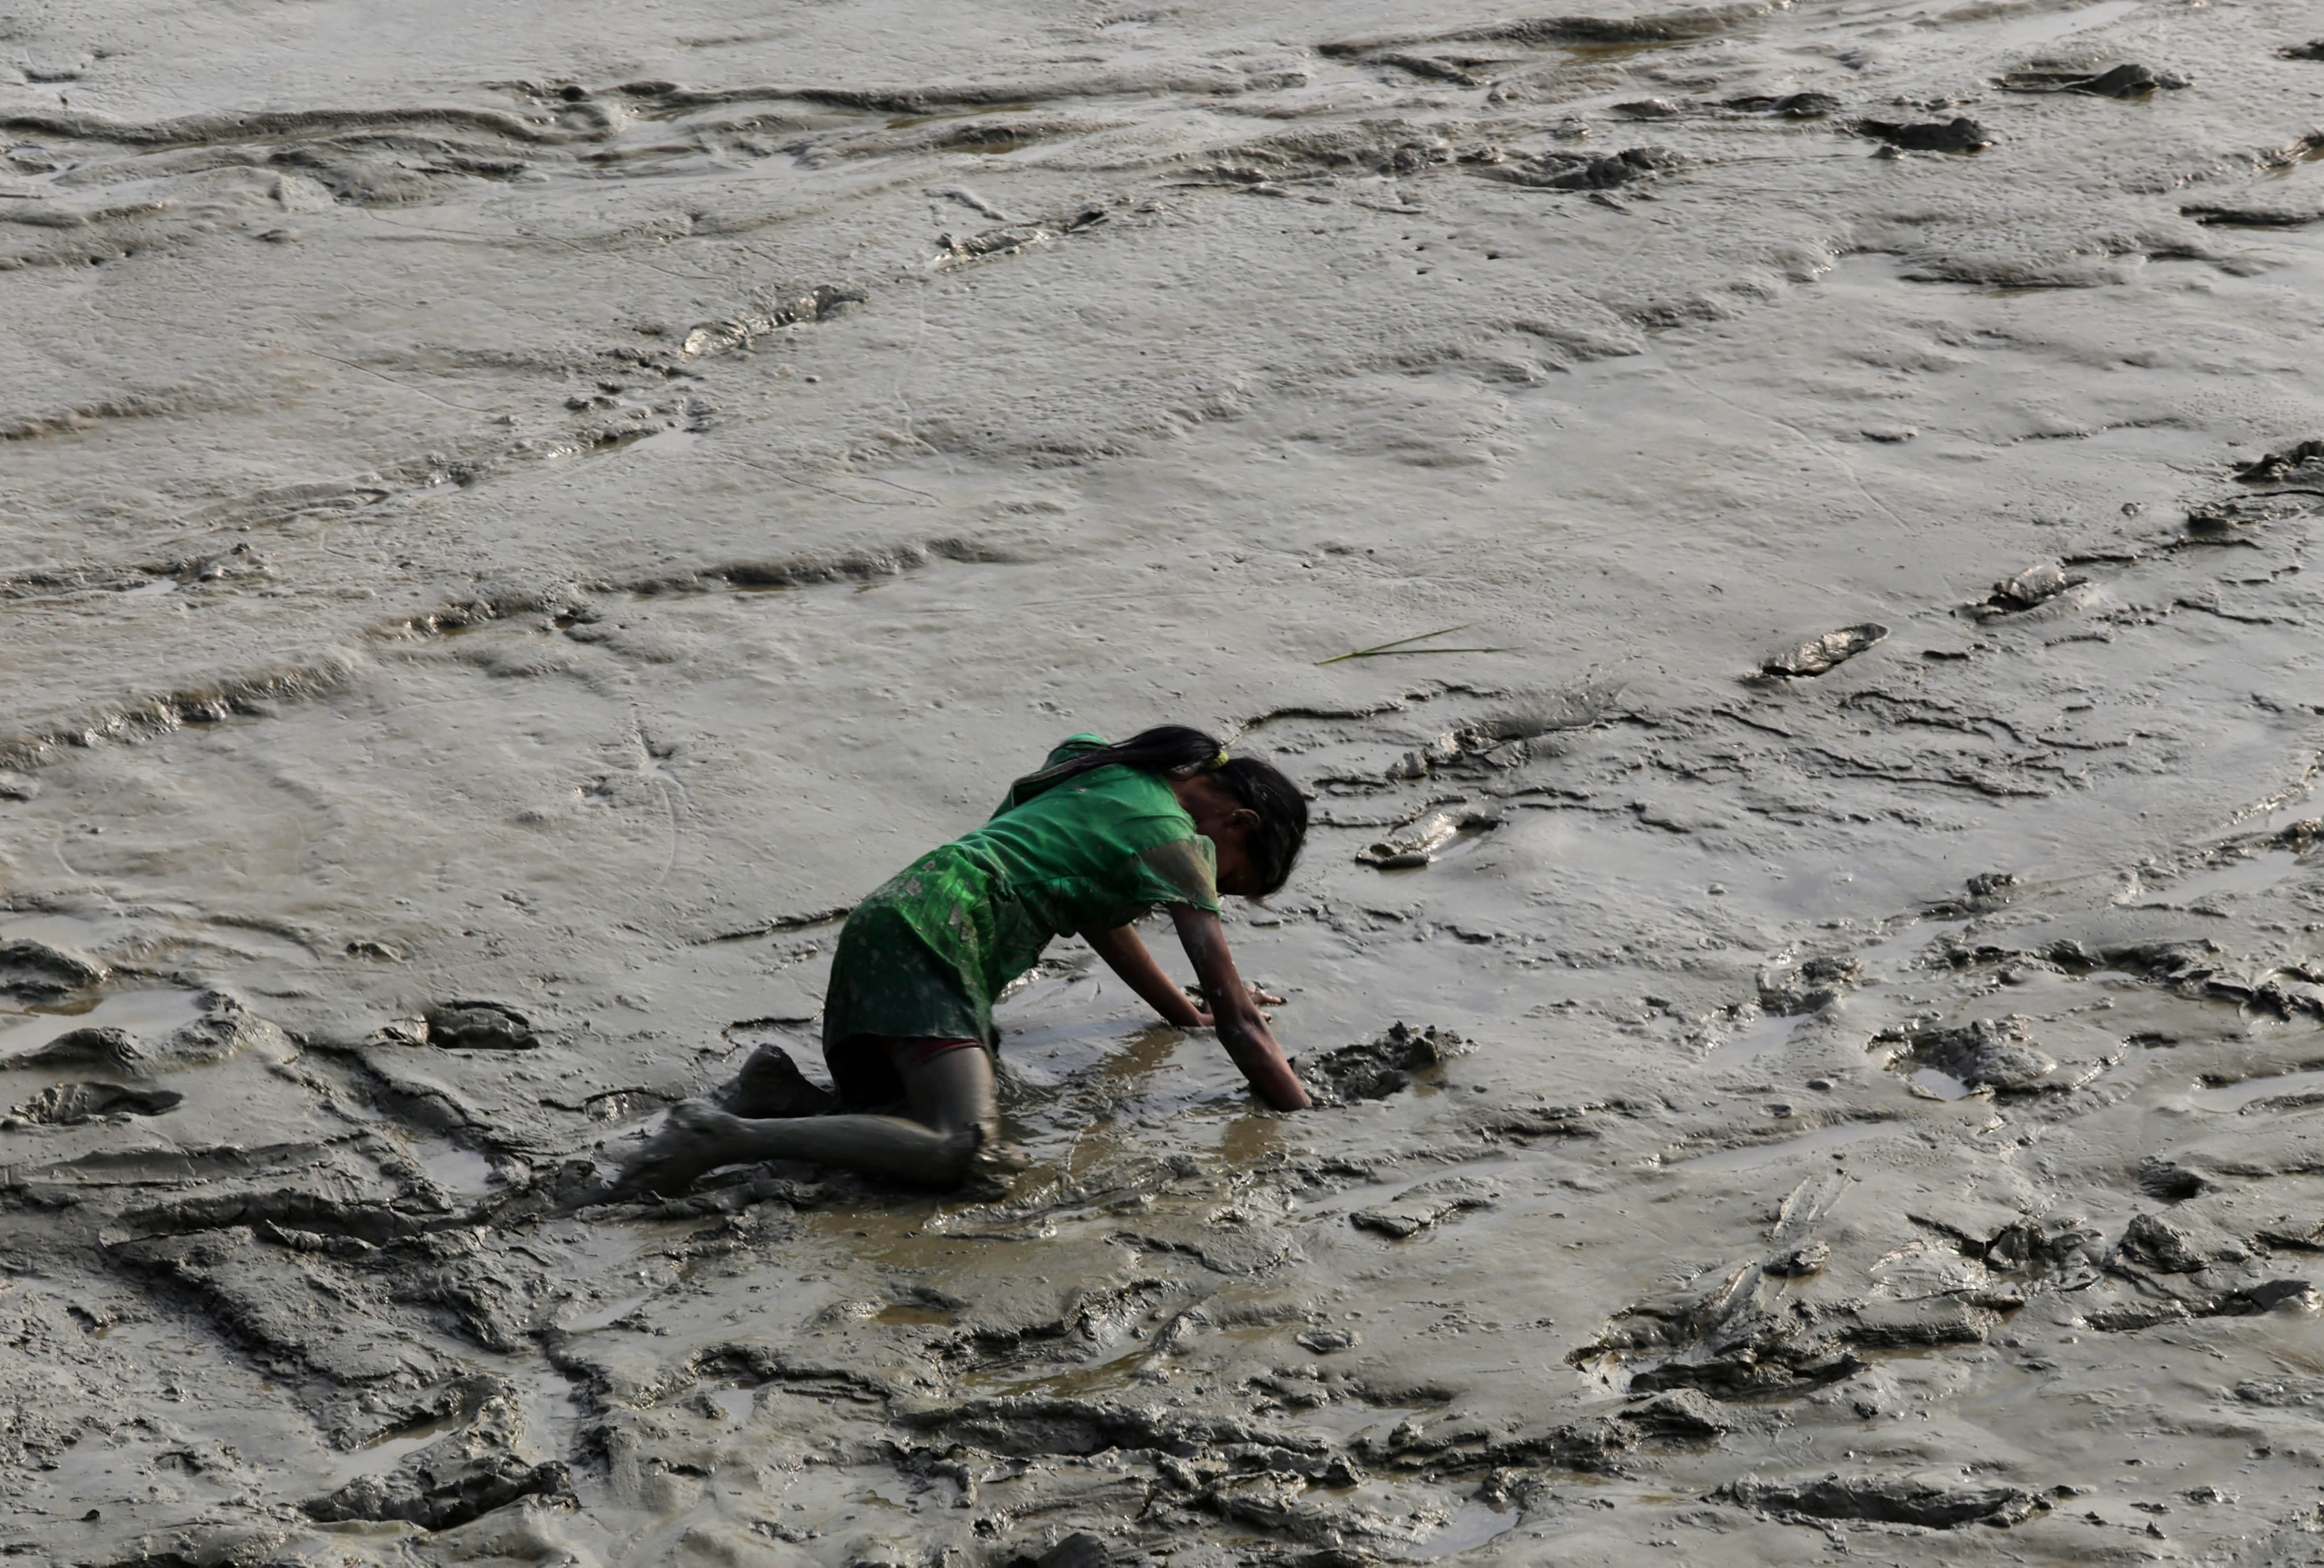 An Indian girl tries to pick up a coin in the mud of the Ganges River at Harwood point, 90 kms south of Calcutta, eastern India, Jan. 12, 2014. Coins were offered by pilgrims on their way to take a holy dip at Gangasagar for the upcoming Gangasagar annual fair.